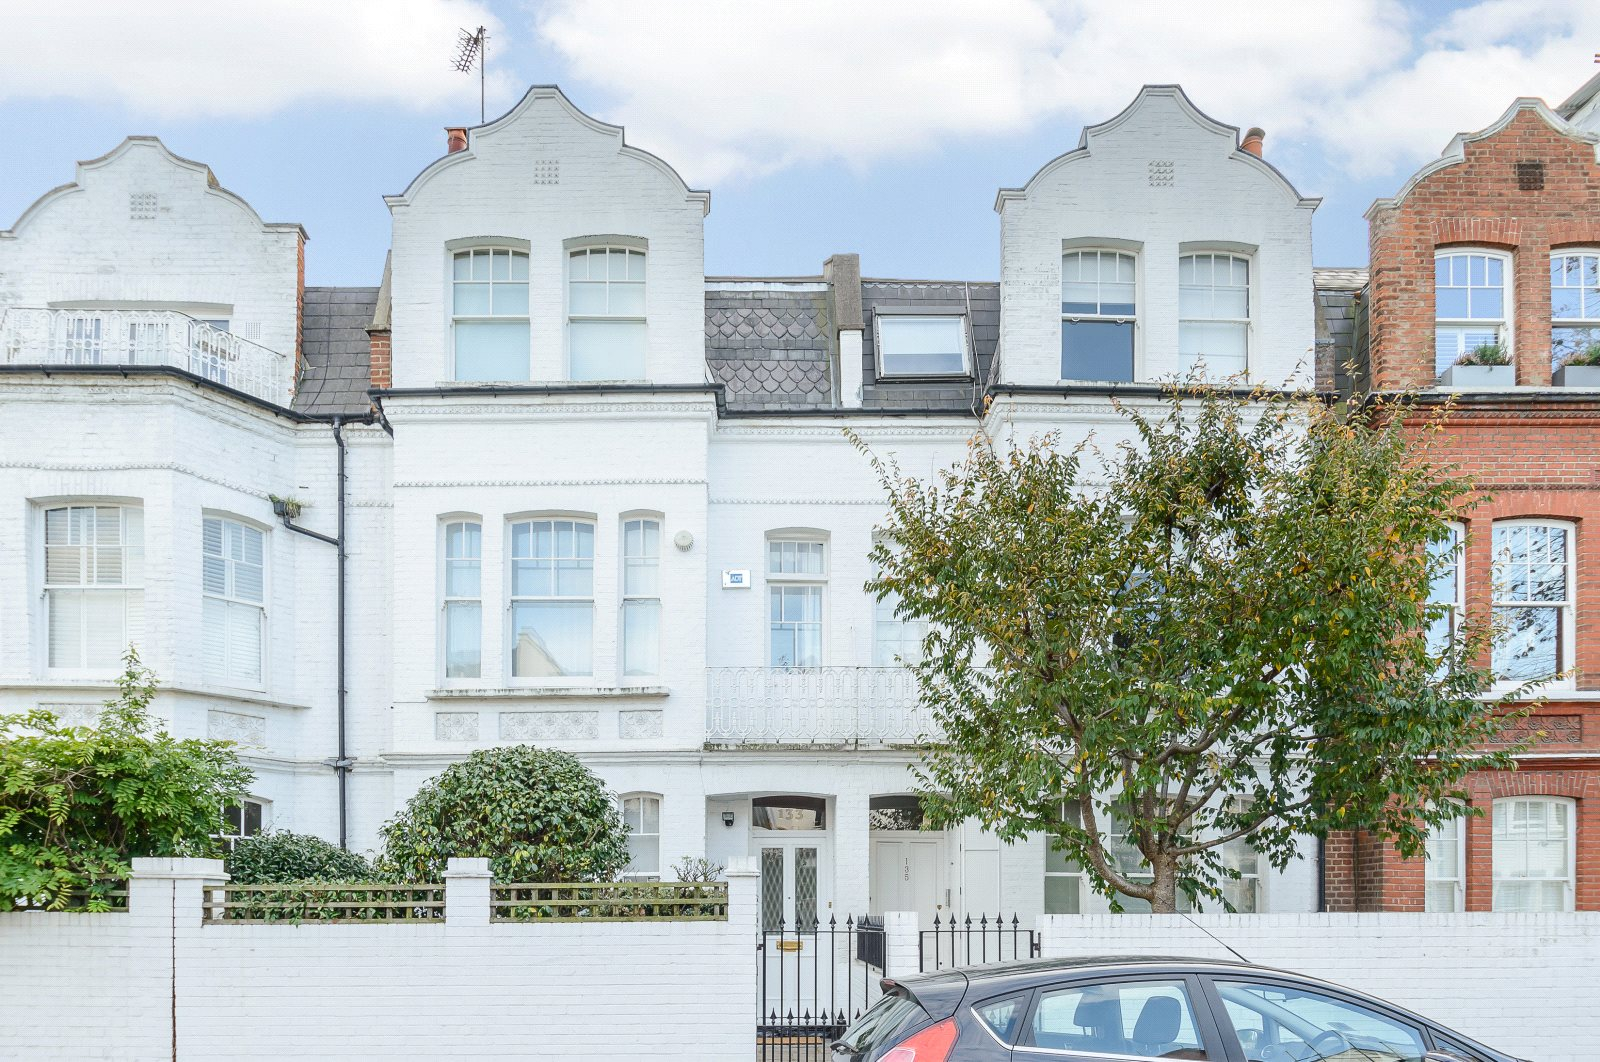 独户住宅 为 销售 在 Hurlingham Road, Fulham, London, SW6 Fulham, London, 英格兰